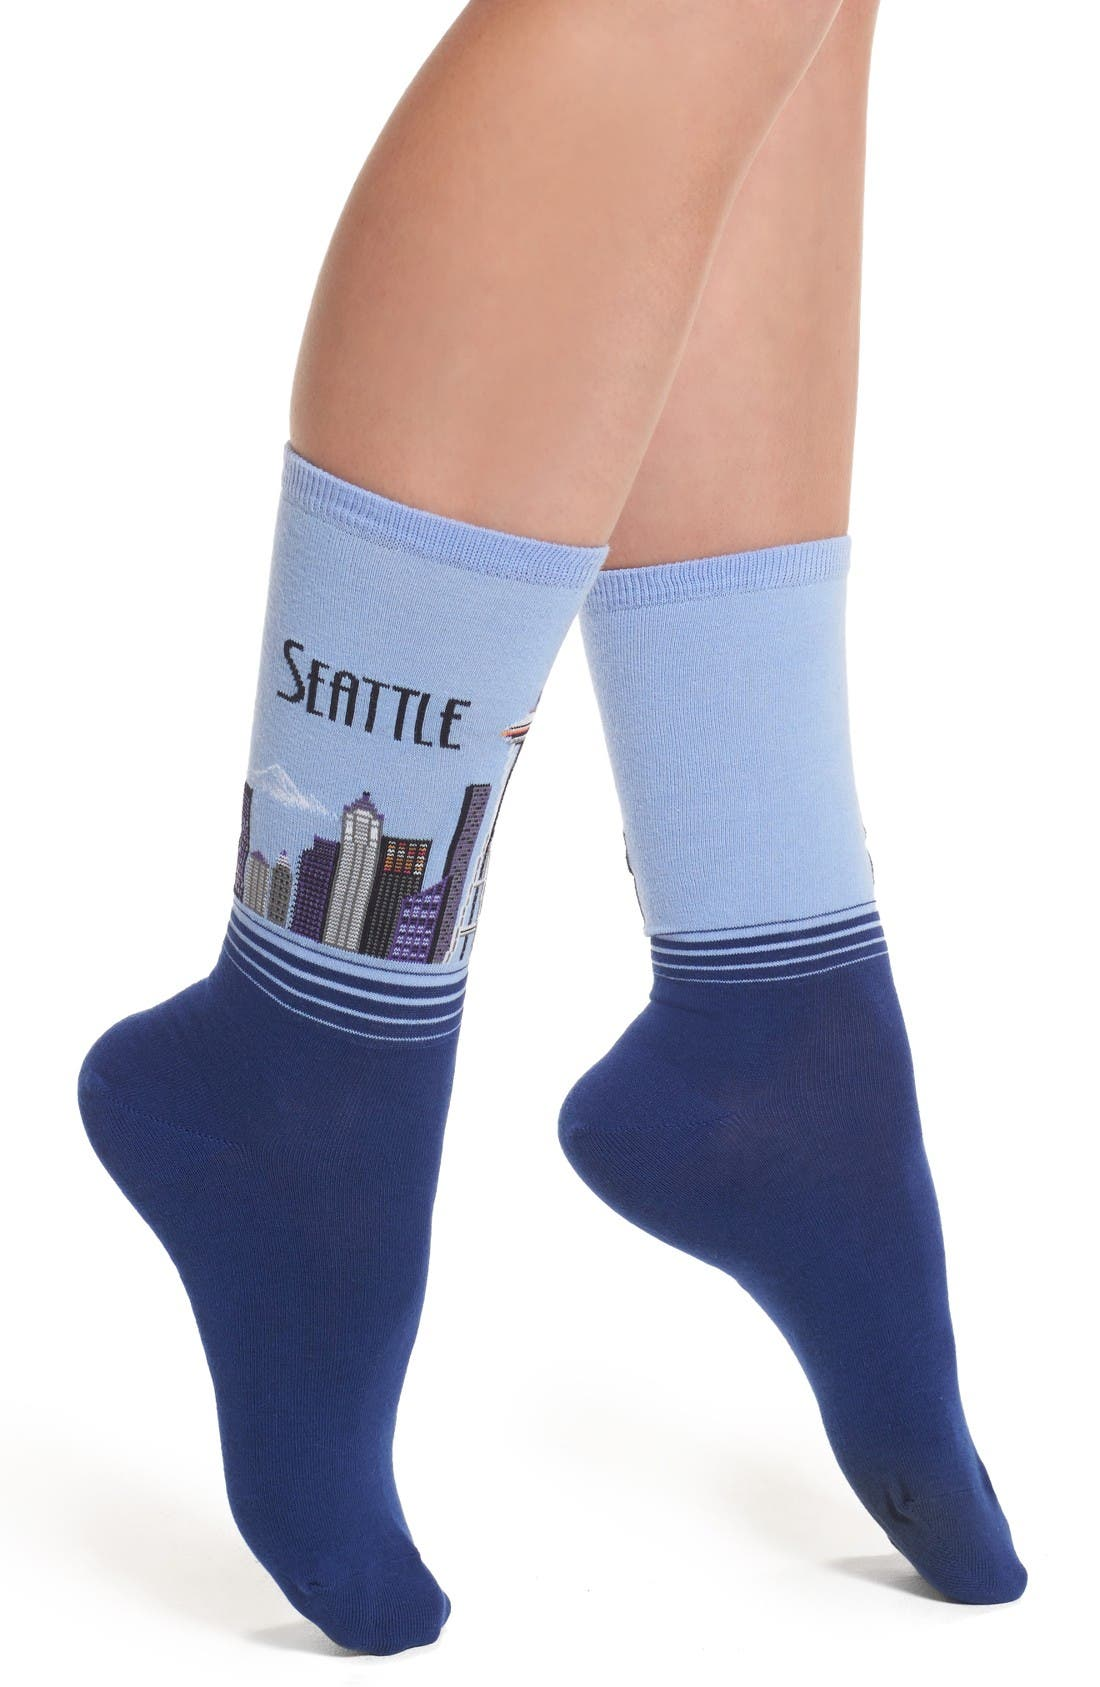 HOT SOX Seattle Socks